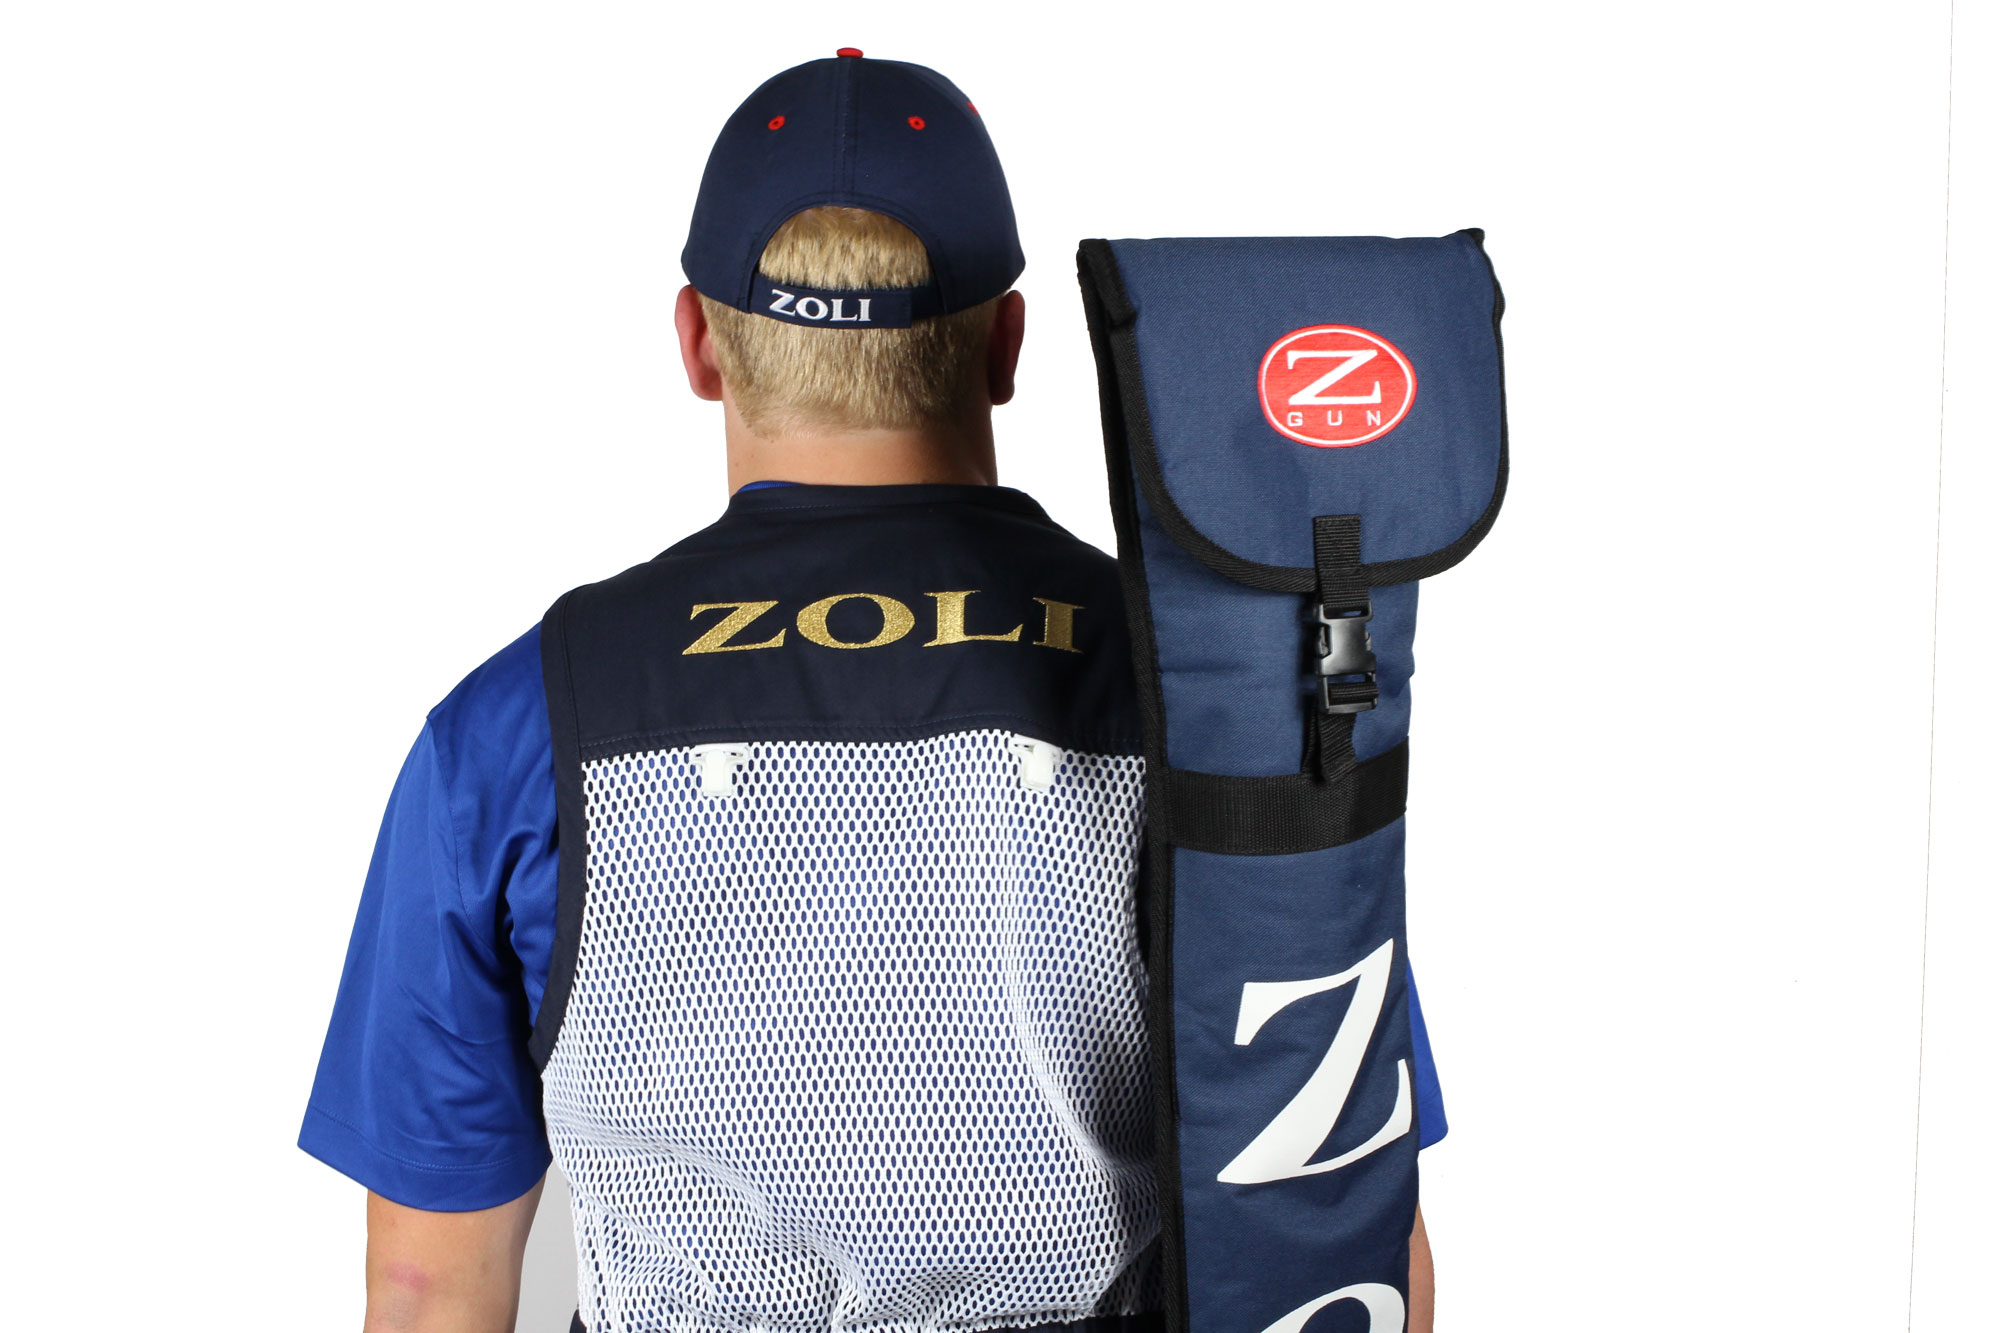 Zoli Shooting Gear